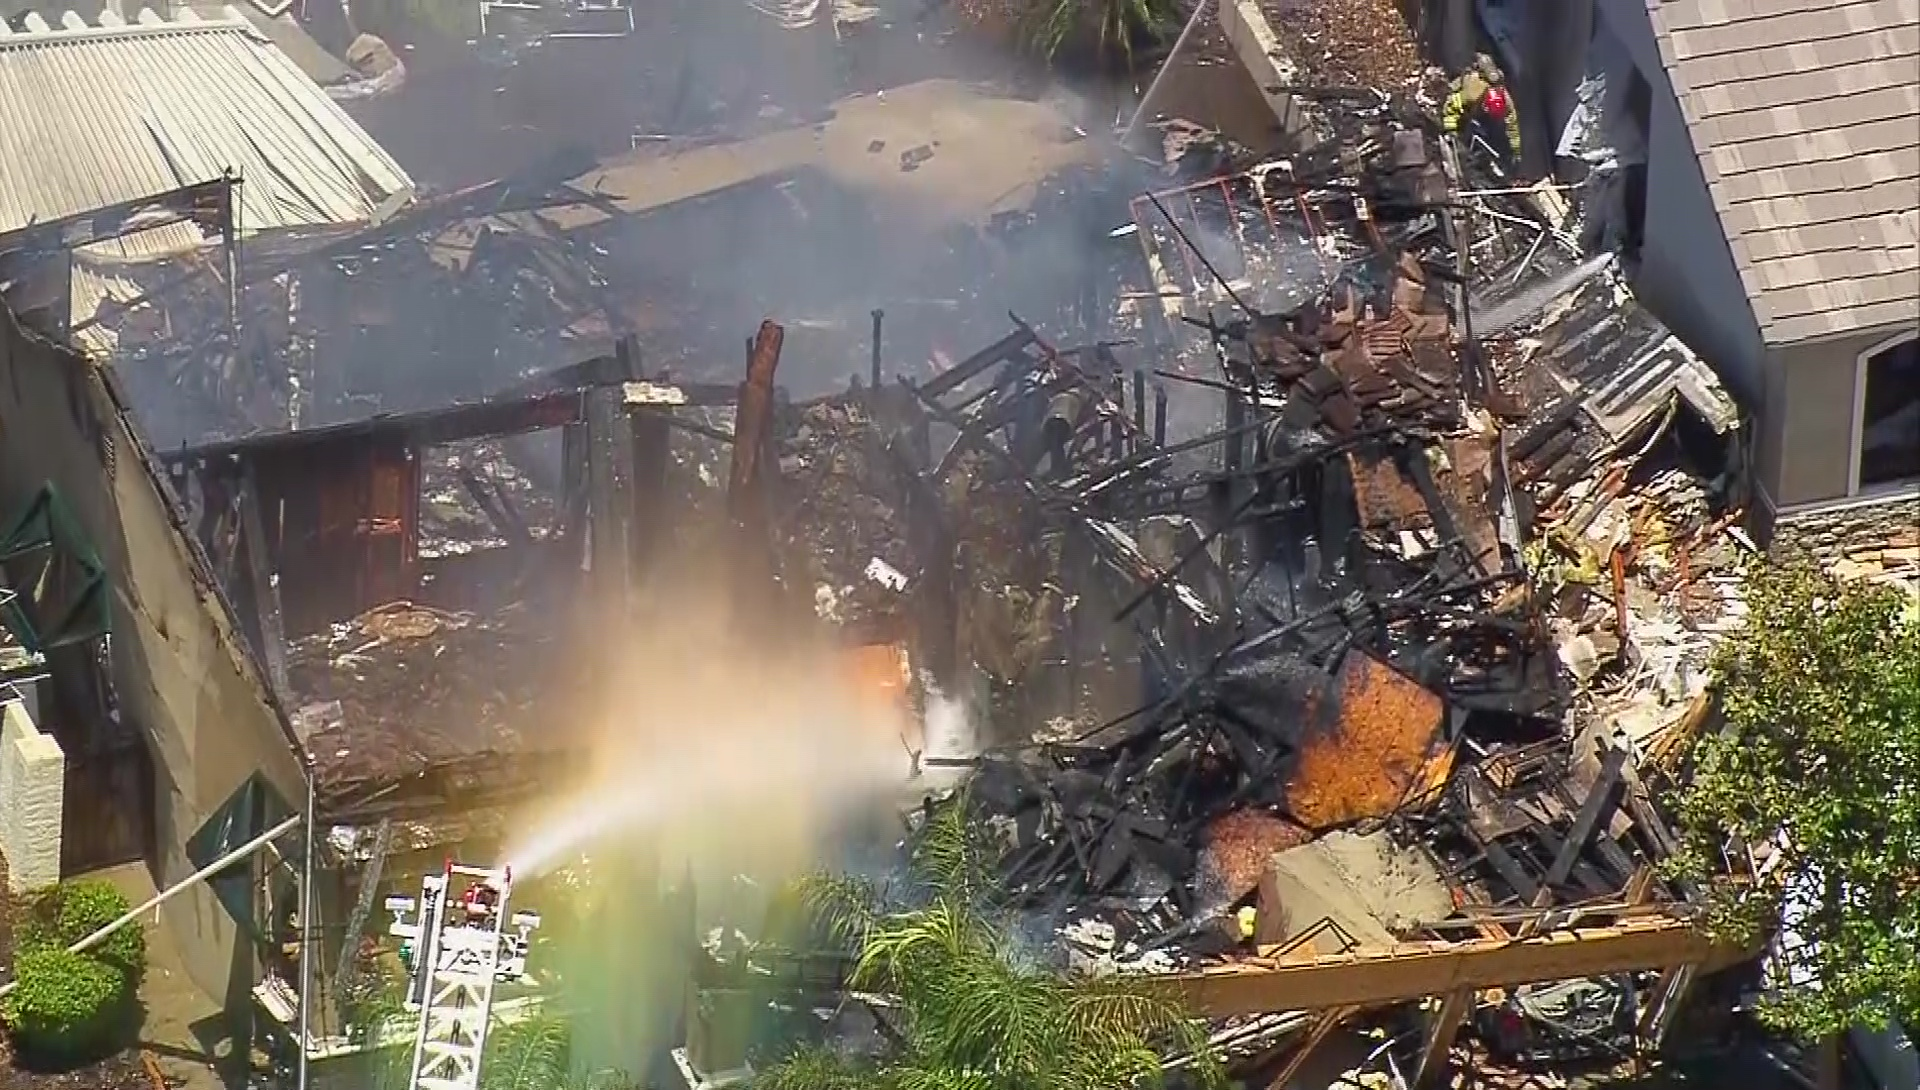 Gas line explosion kills utility worker, injures 15 in Riverside